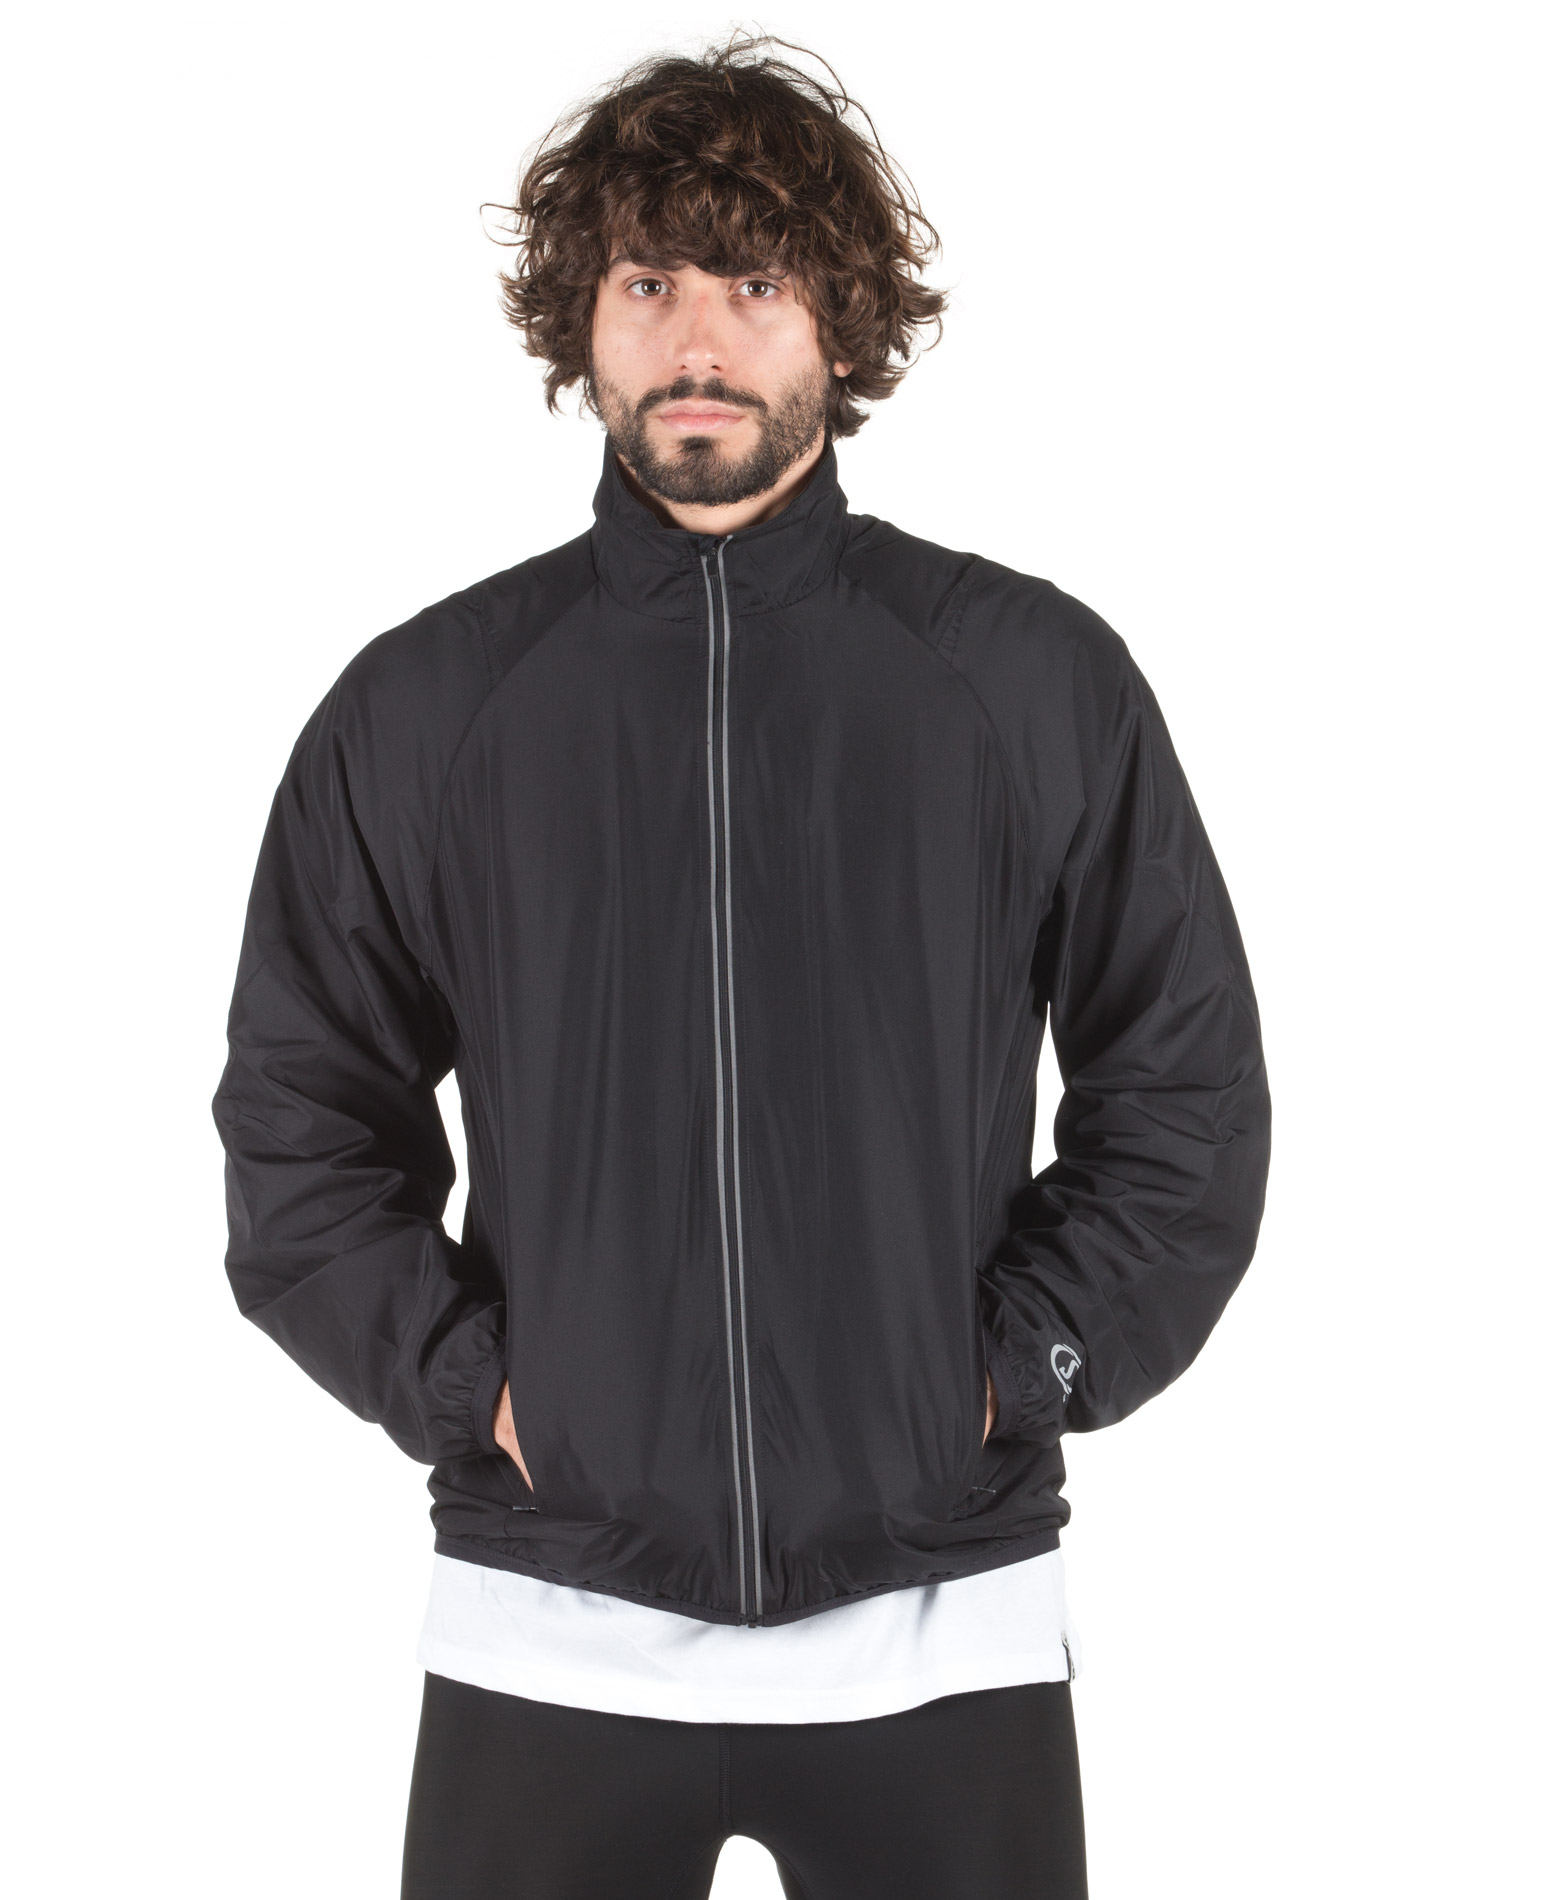 SPALDING MENS ADRENALIN JACKET 0S6000-36 Μαύρο